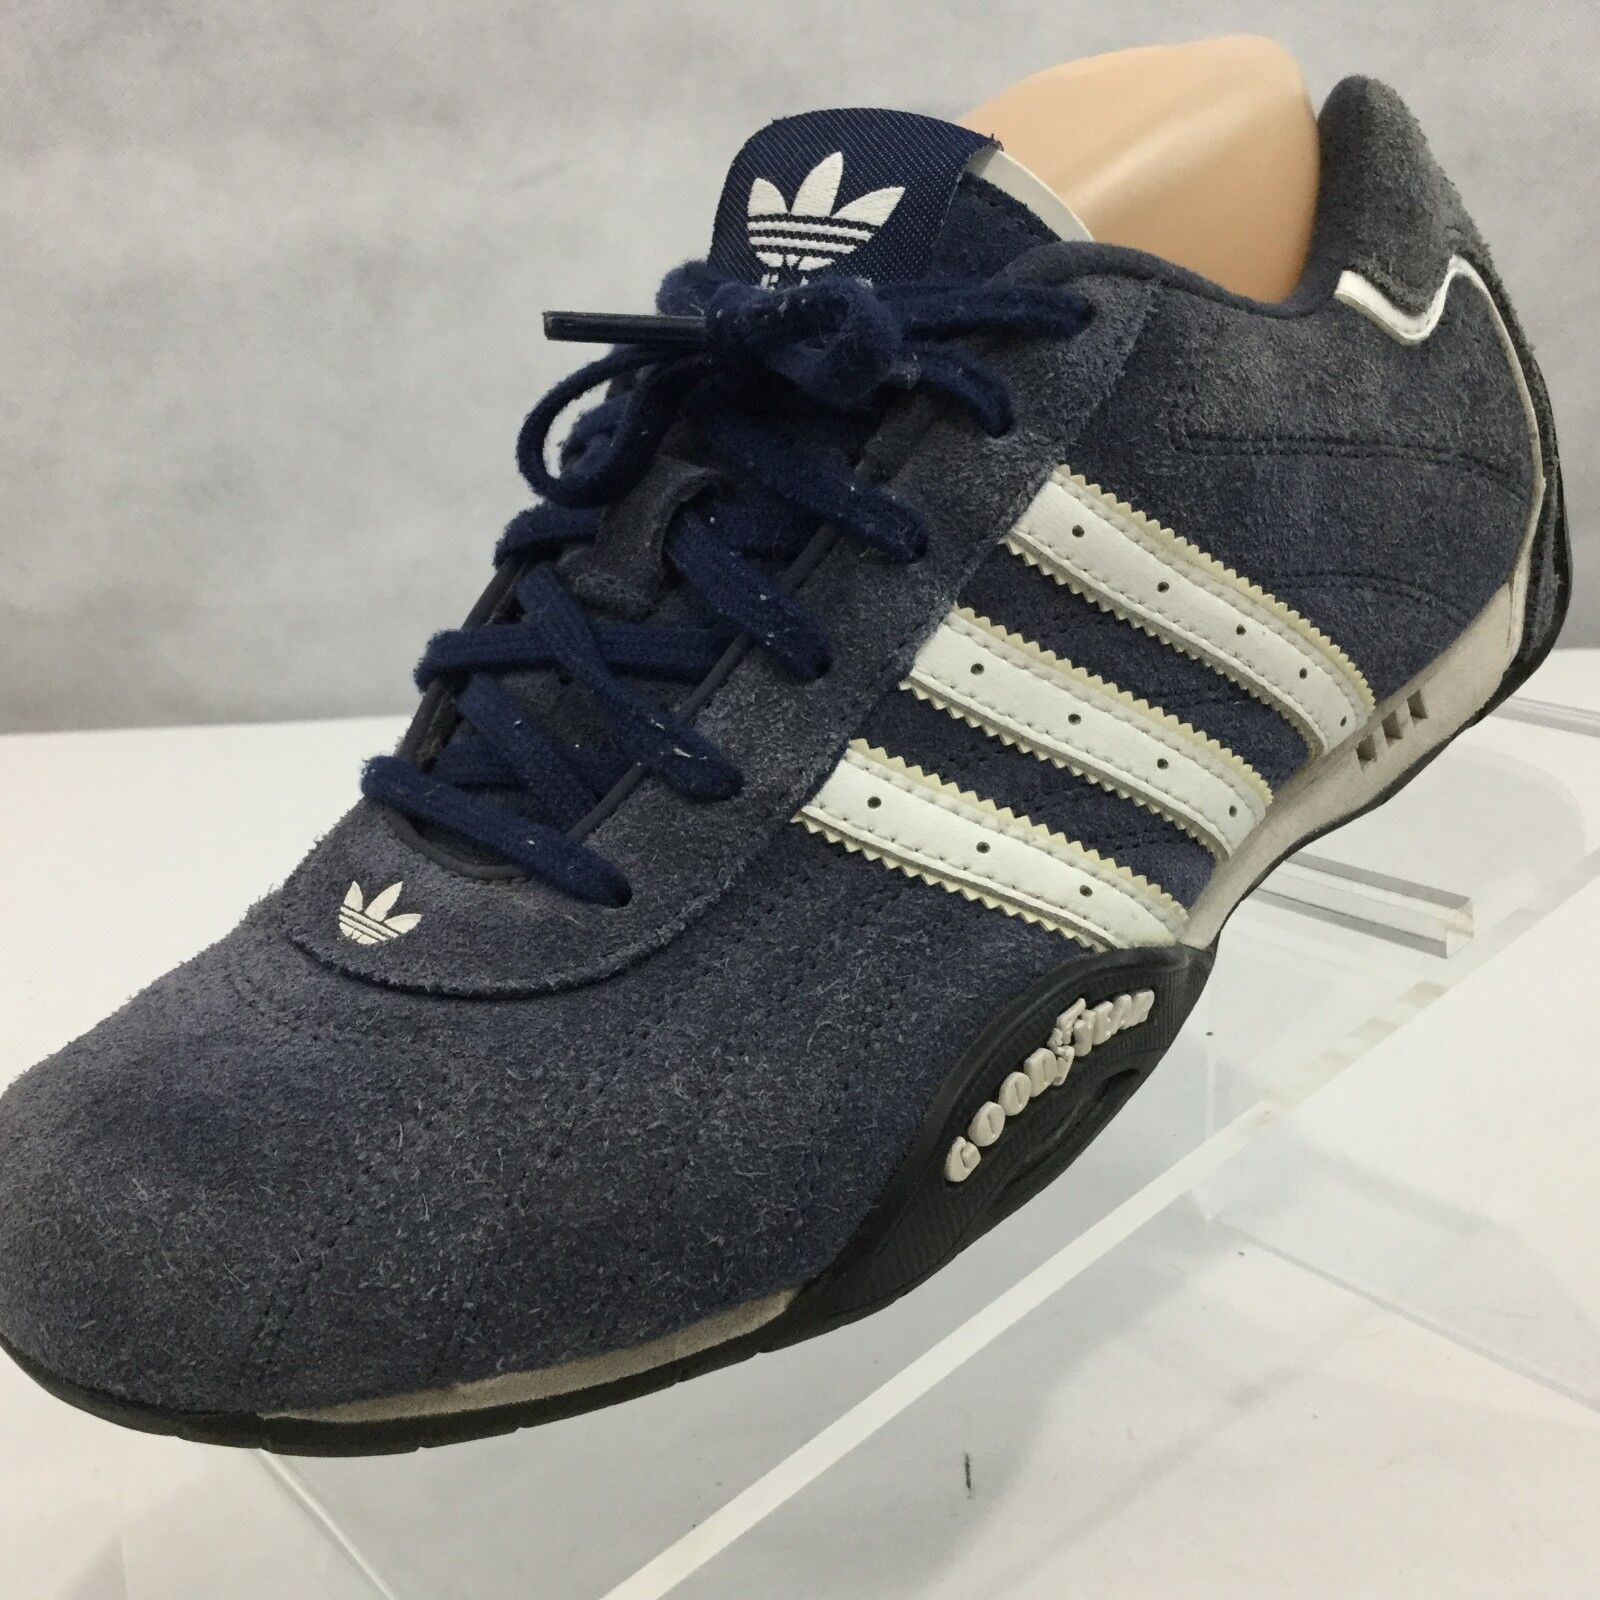 Vtg Adidas Adi Racer Goodyear Driving Shoes Sz 5 Blue Leather Trefoil 3  Stripes  4994c0310